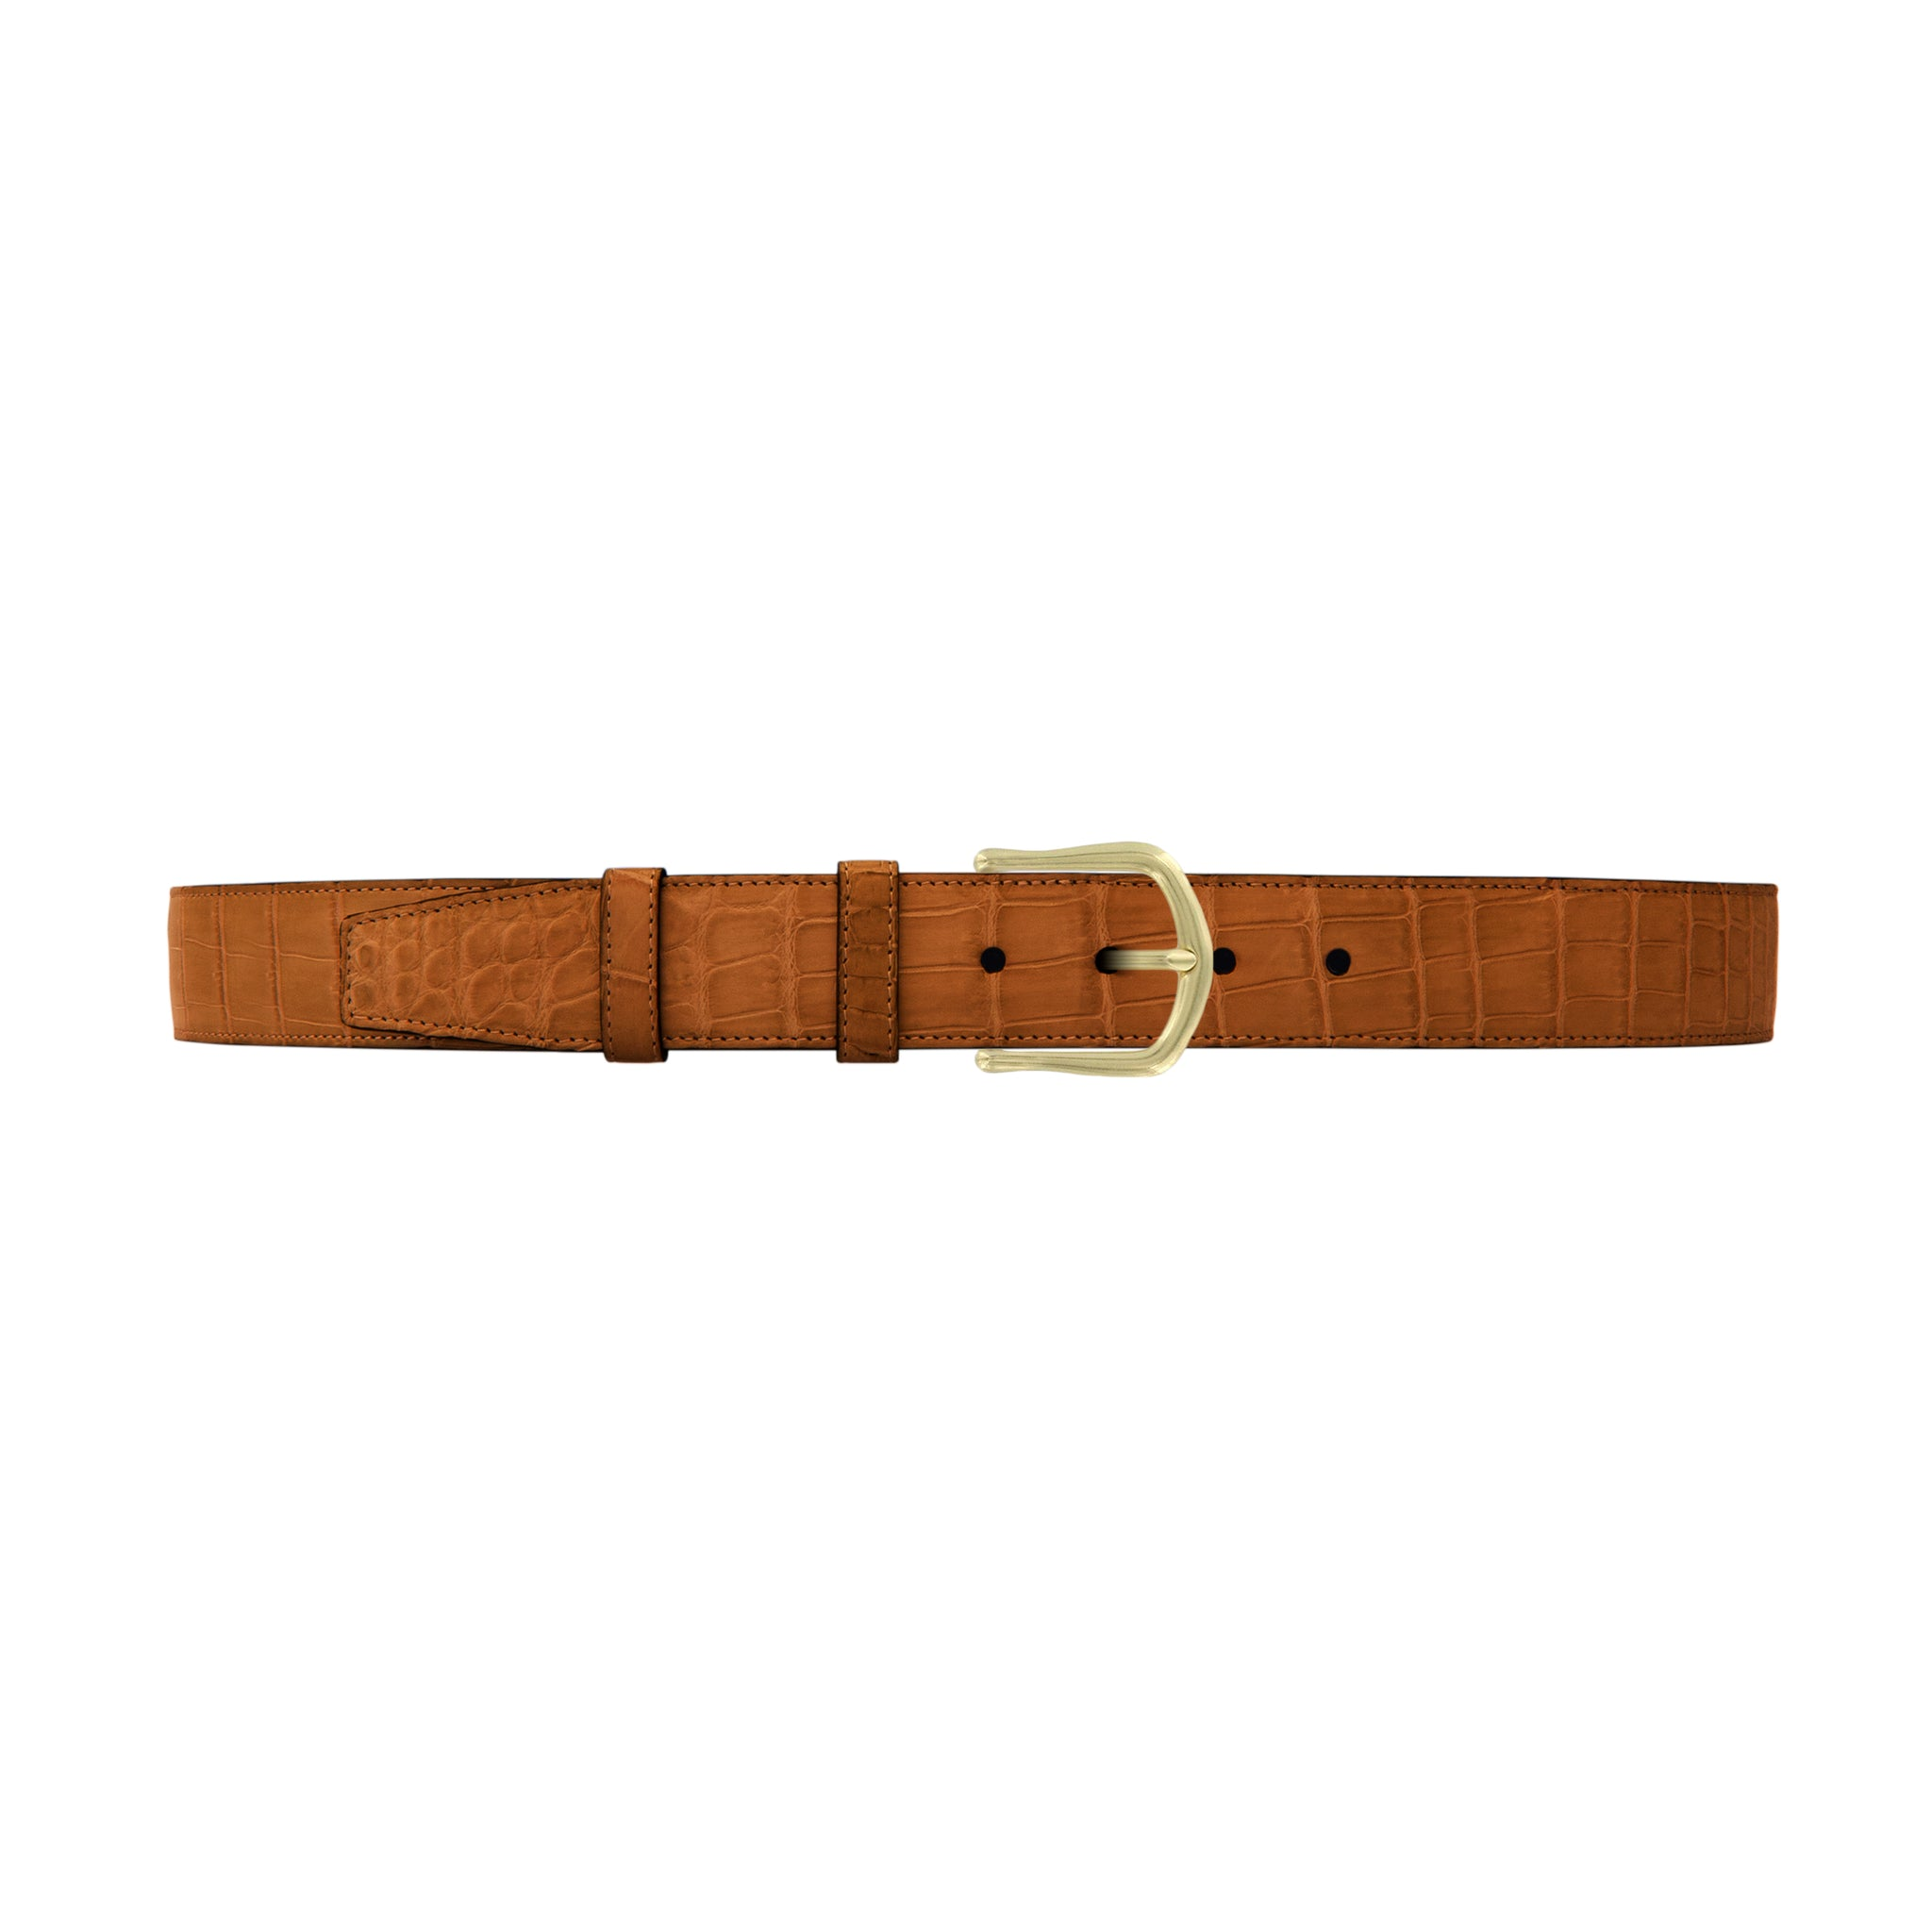 "1 1/2"" Dark Sand Classic Belt with Regis Dress Buckle in Brass"